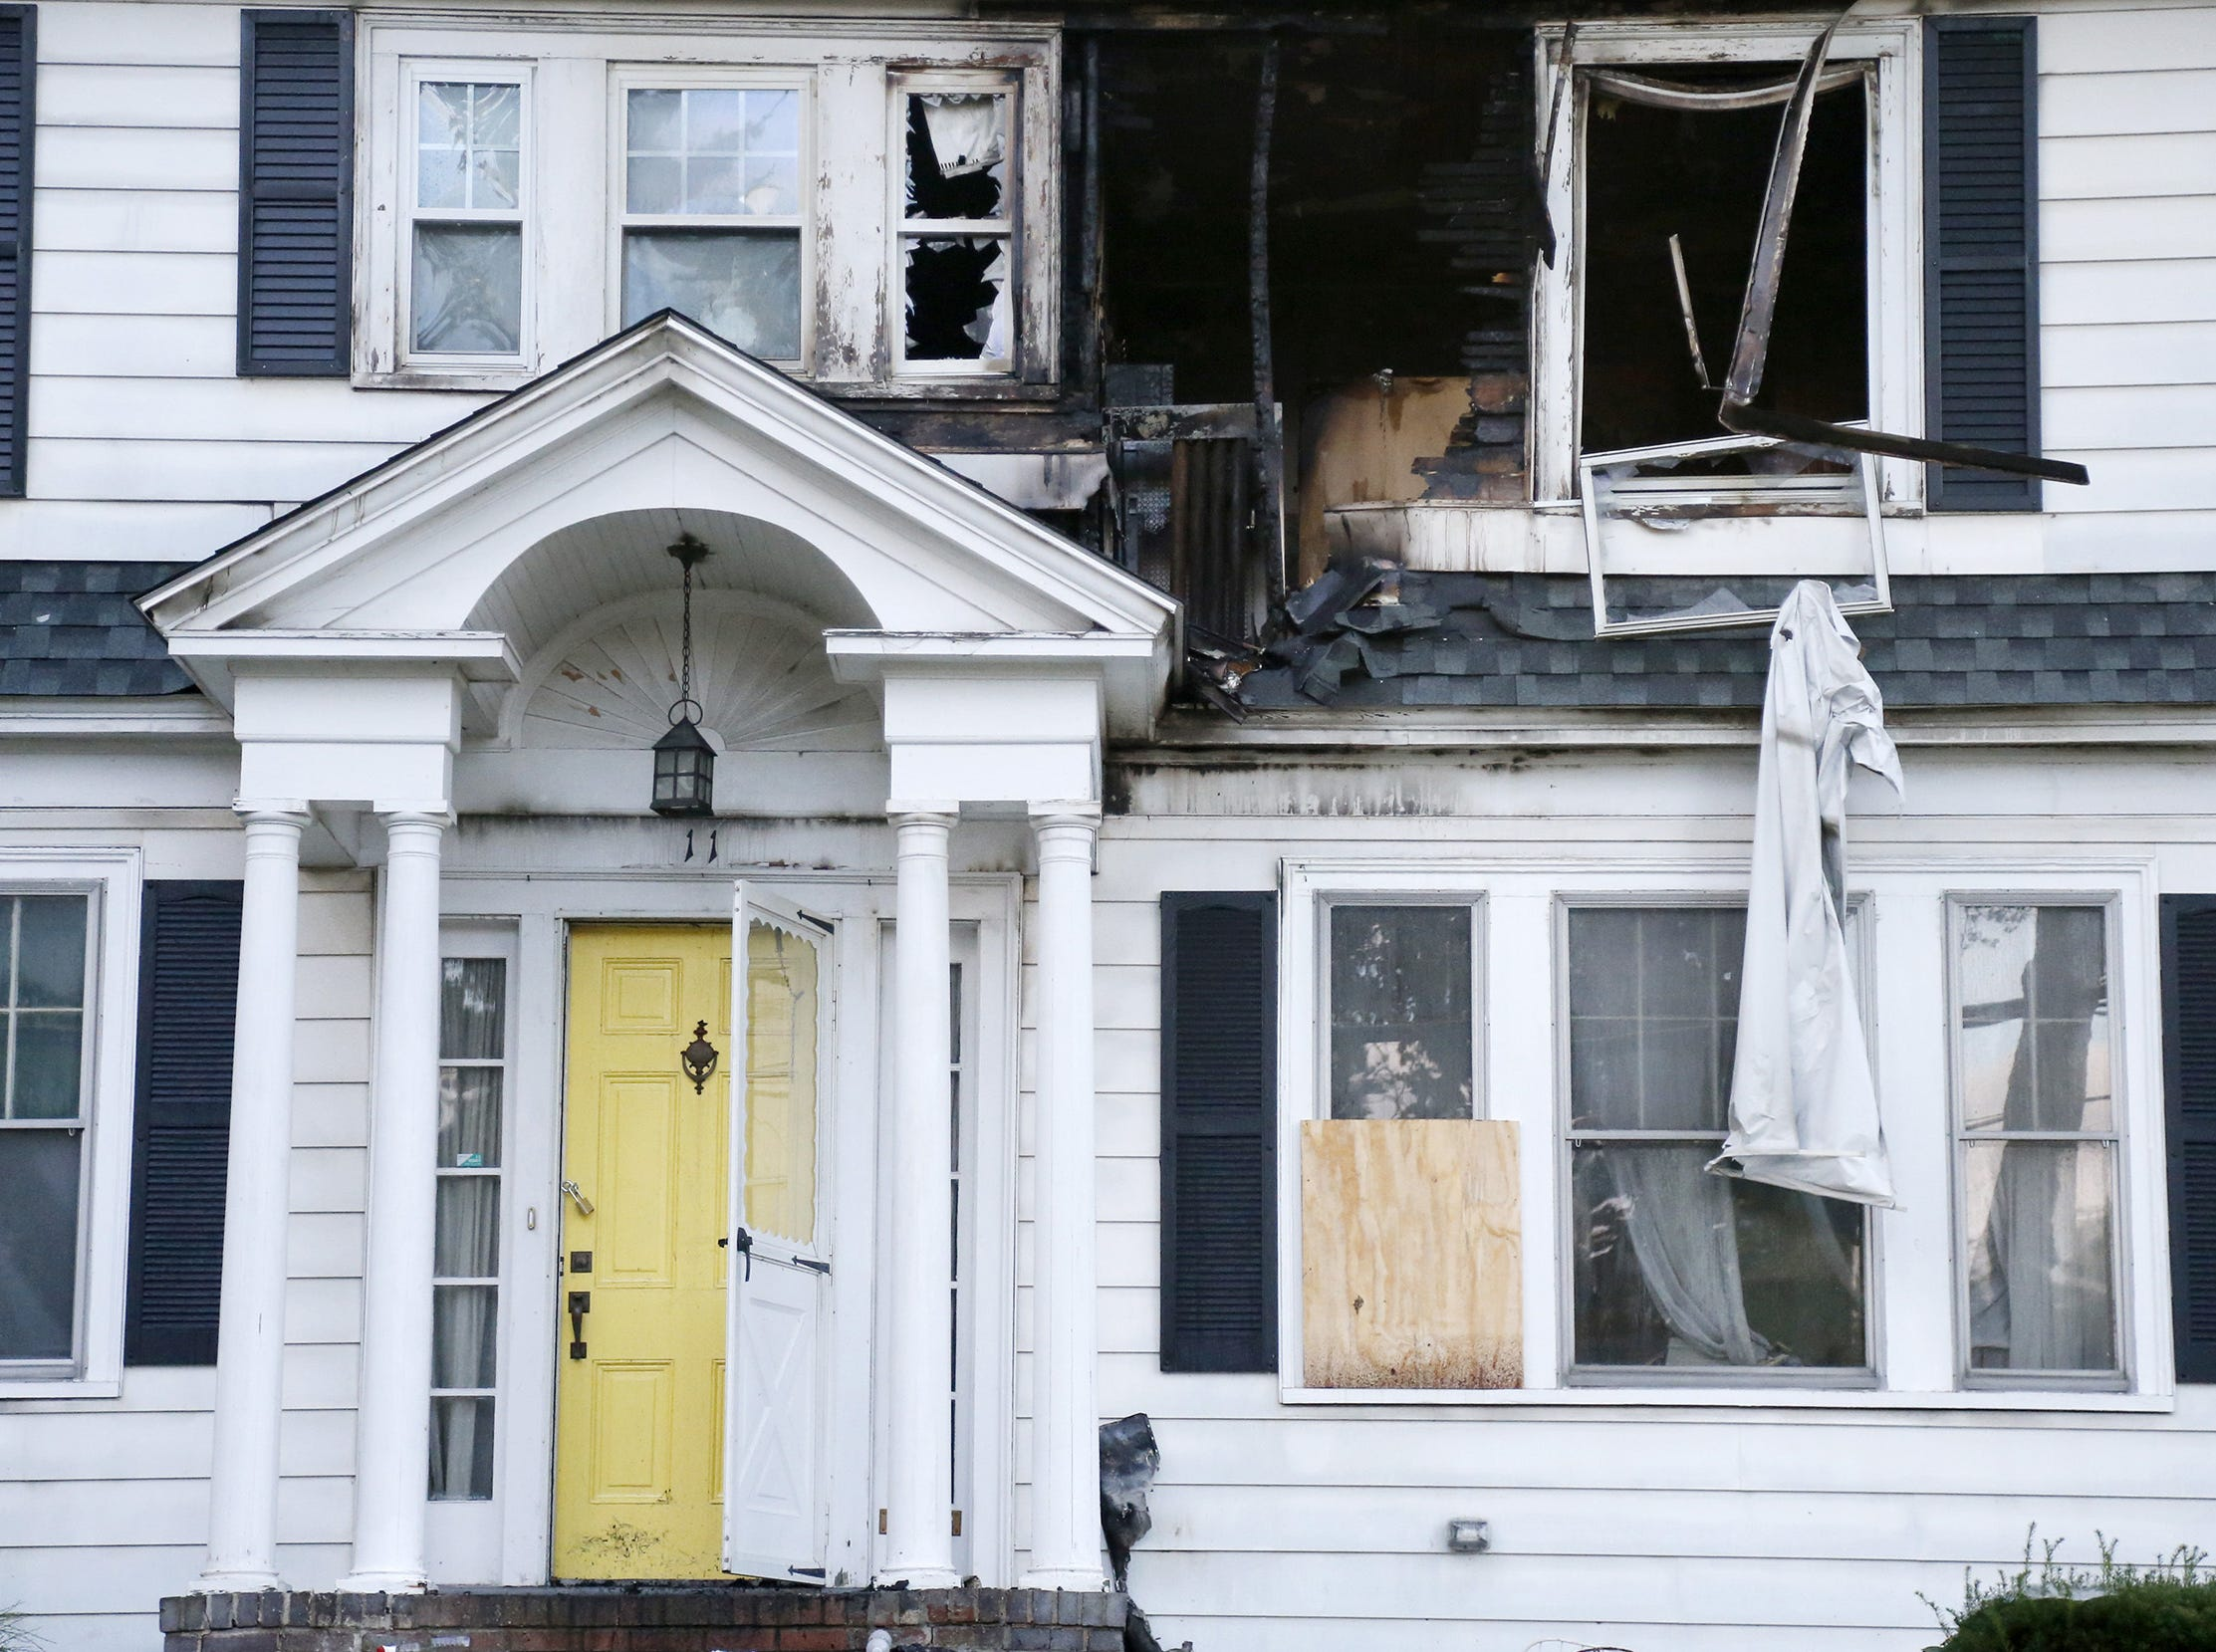 A house on Herrick Road in North Andover, Mass., is seen Friday, Sept. 14, 2018. The home was one of multiple houses that went up in flames on Thursday afternoon after gas explosions and fires triggered by a problem with a gas line that feeds homes in several communities north of Boston